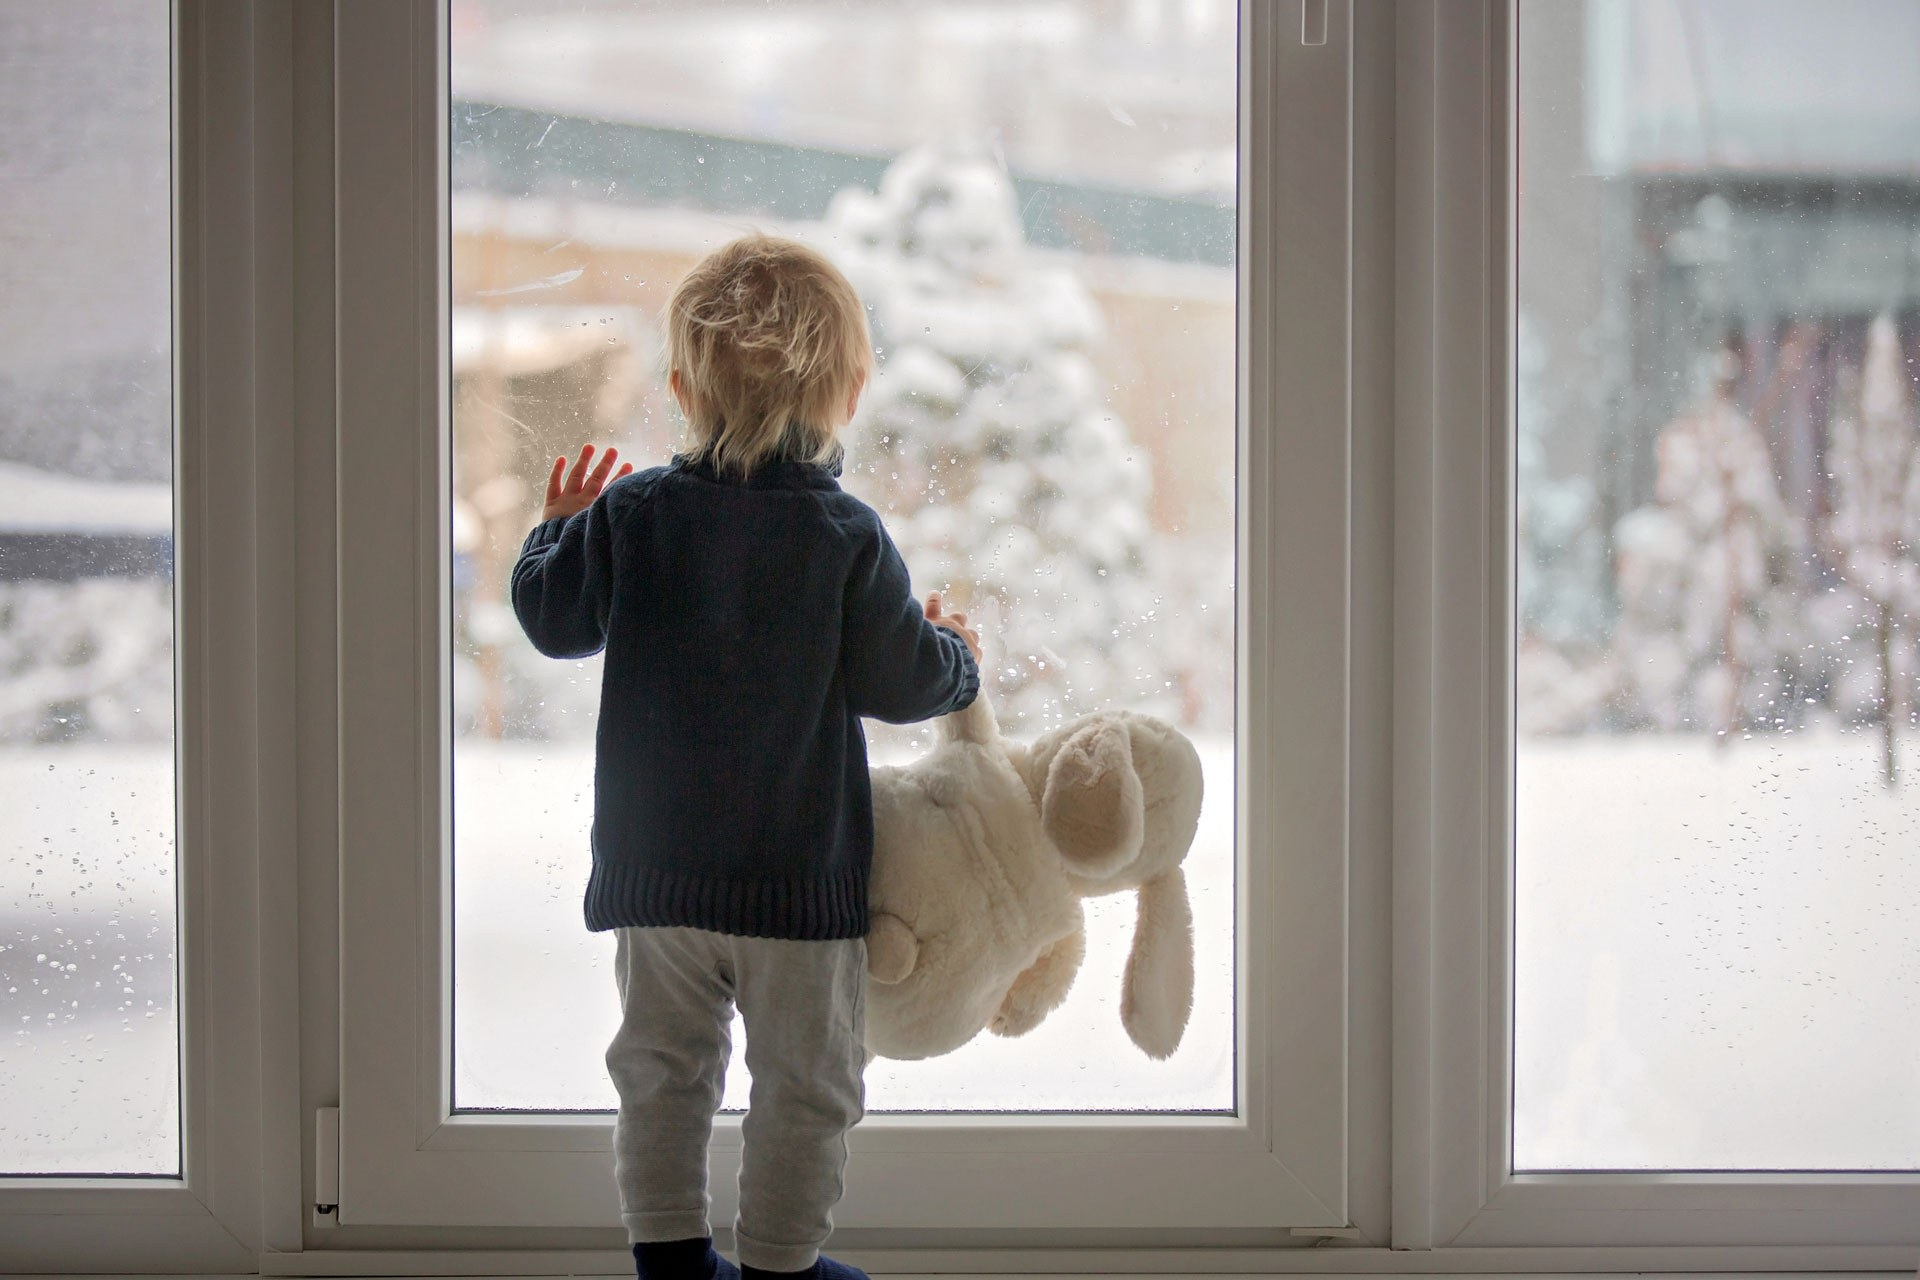 Young Boy Looking Out Window In Winter Too